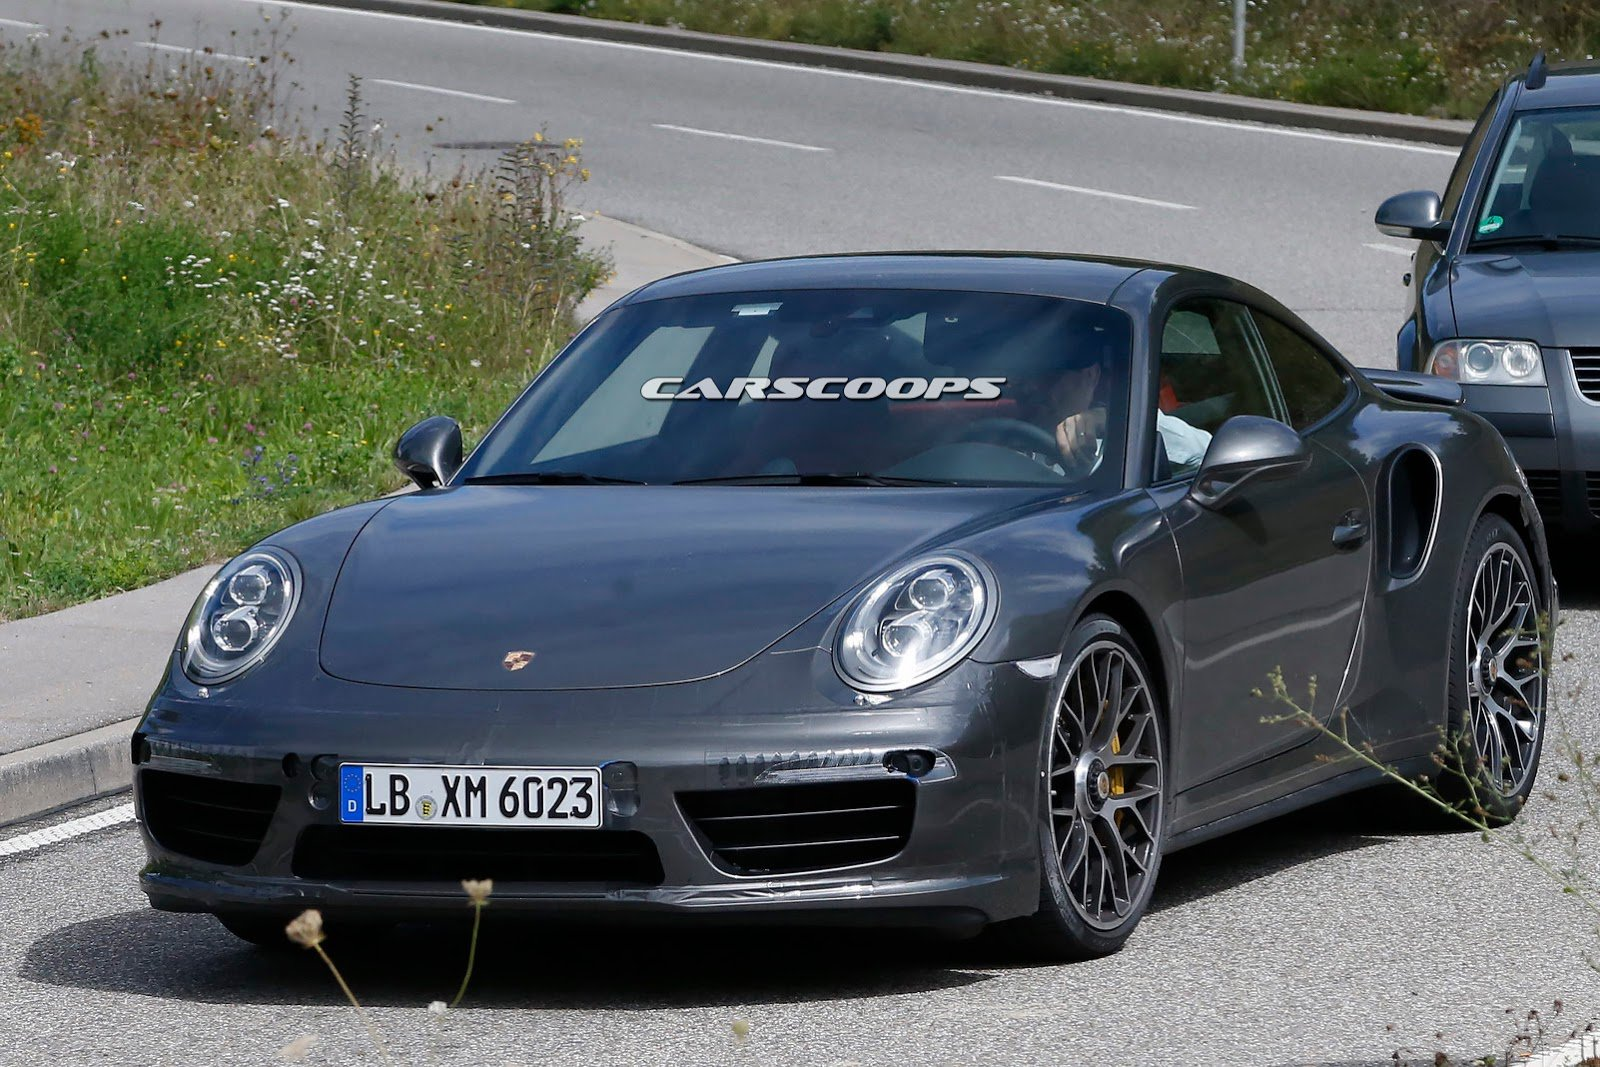 2019 Porsche 911 Turbo S photo - 2